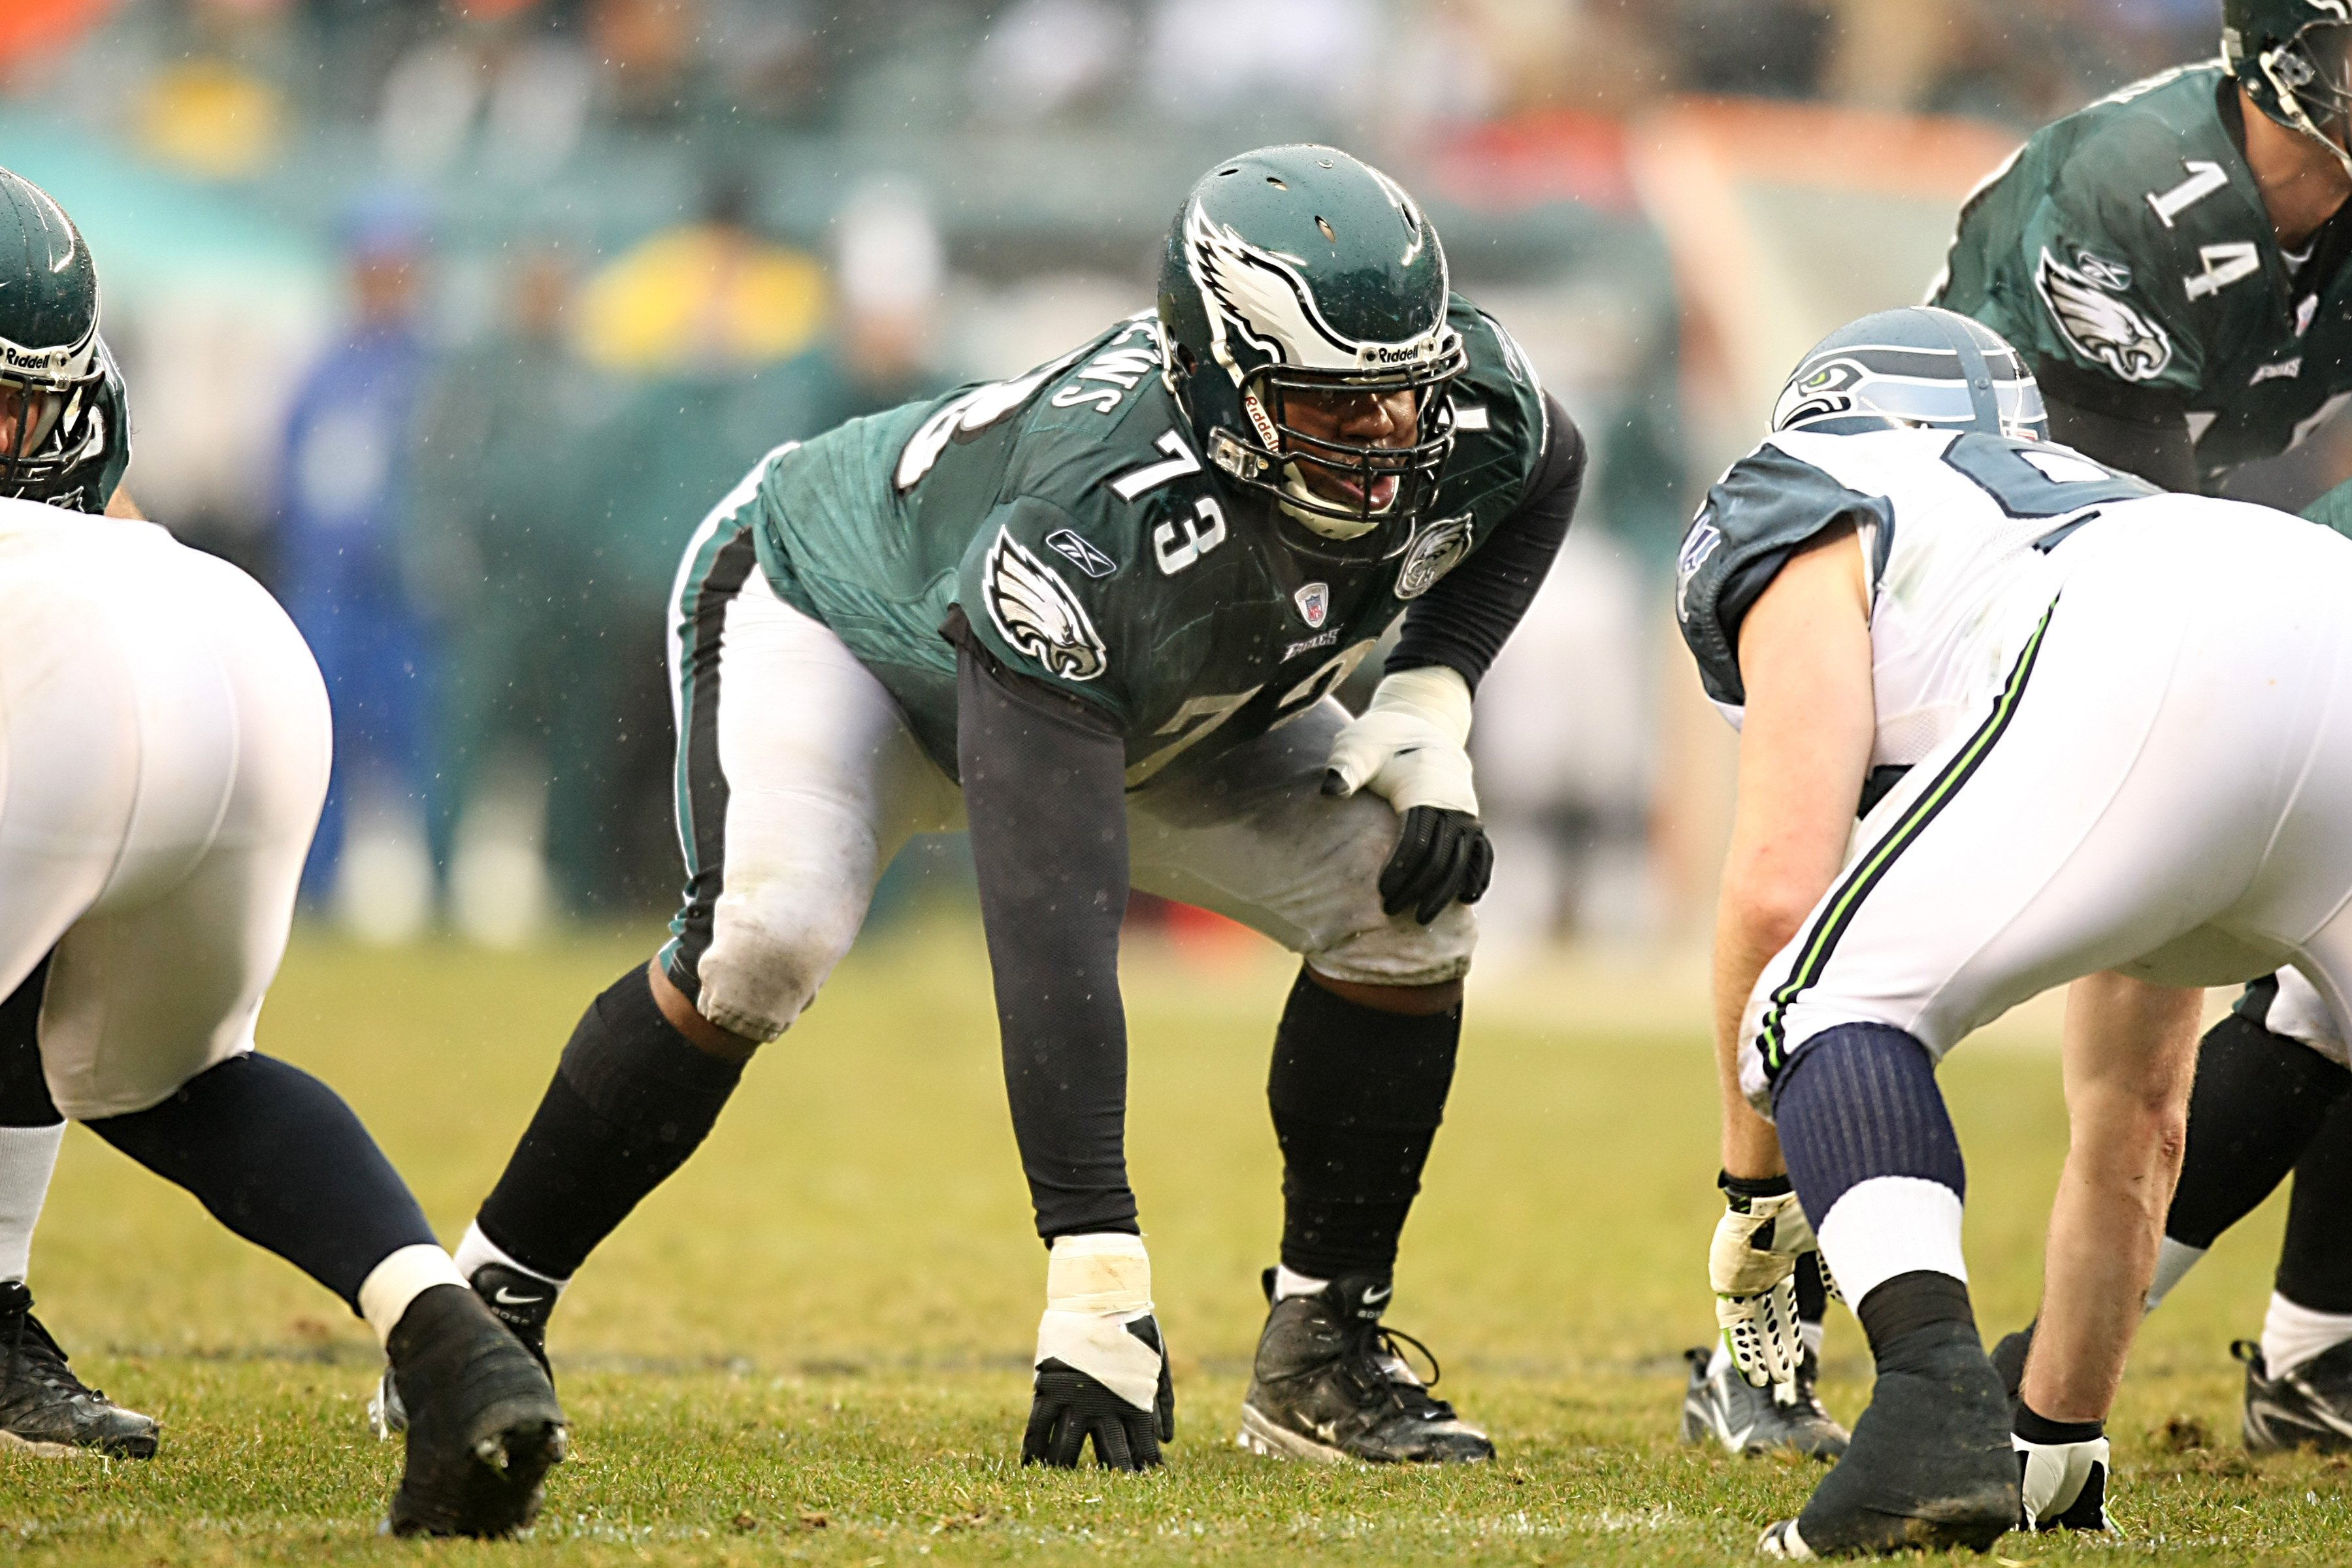 PHILADELPHIA - DECEMBER 2:  Shawn Andrews #73 of the Philadelphia Eagles crouches into position at the line of scrimmage during the NFL game against the Seattle Seahawks at the Lincoln Financial Field on December 2, 2007 in Philadelphia, Pennsylvania. (Ph